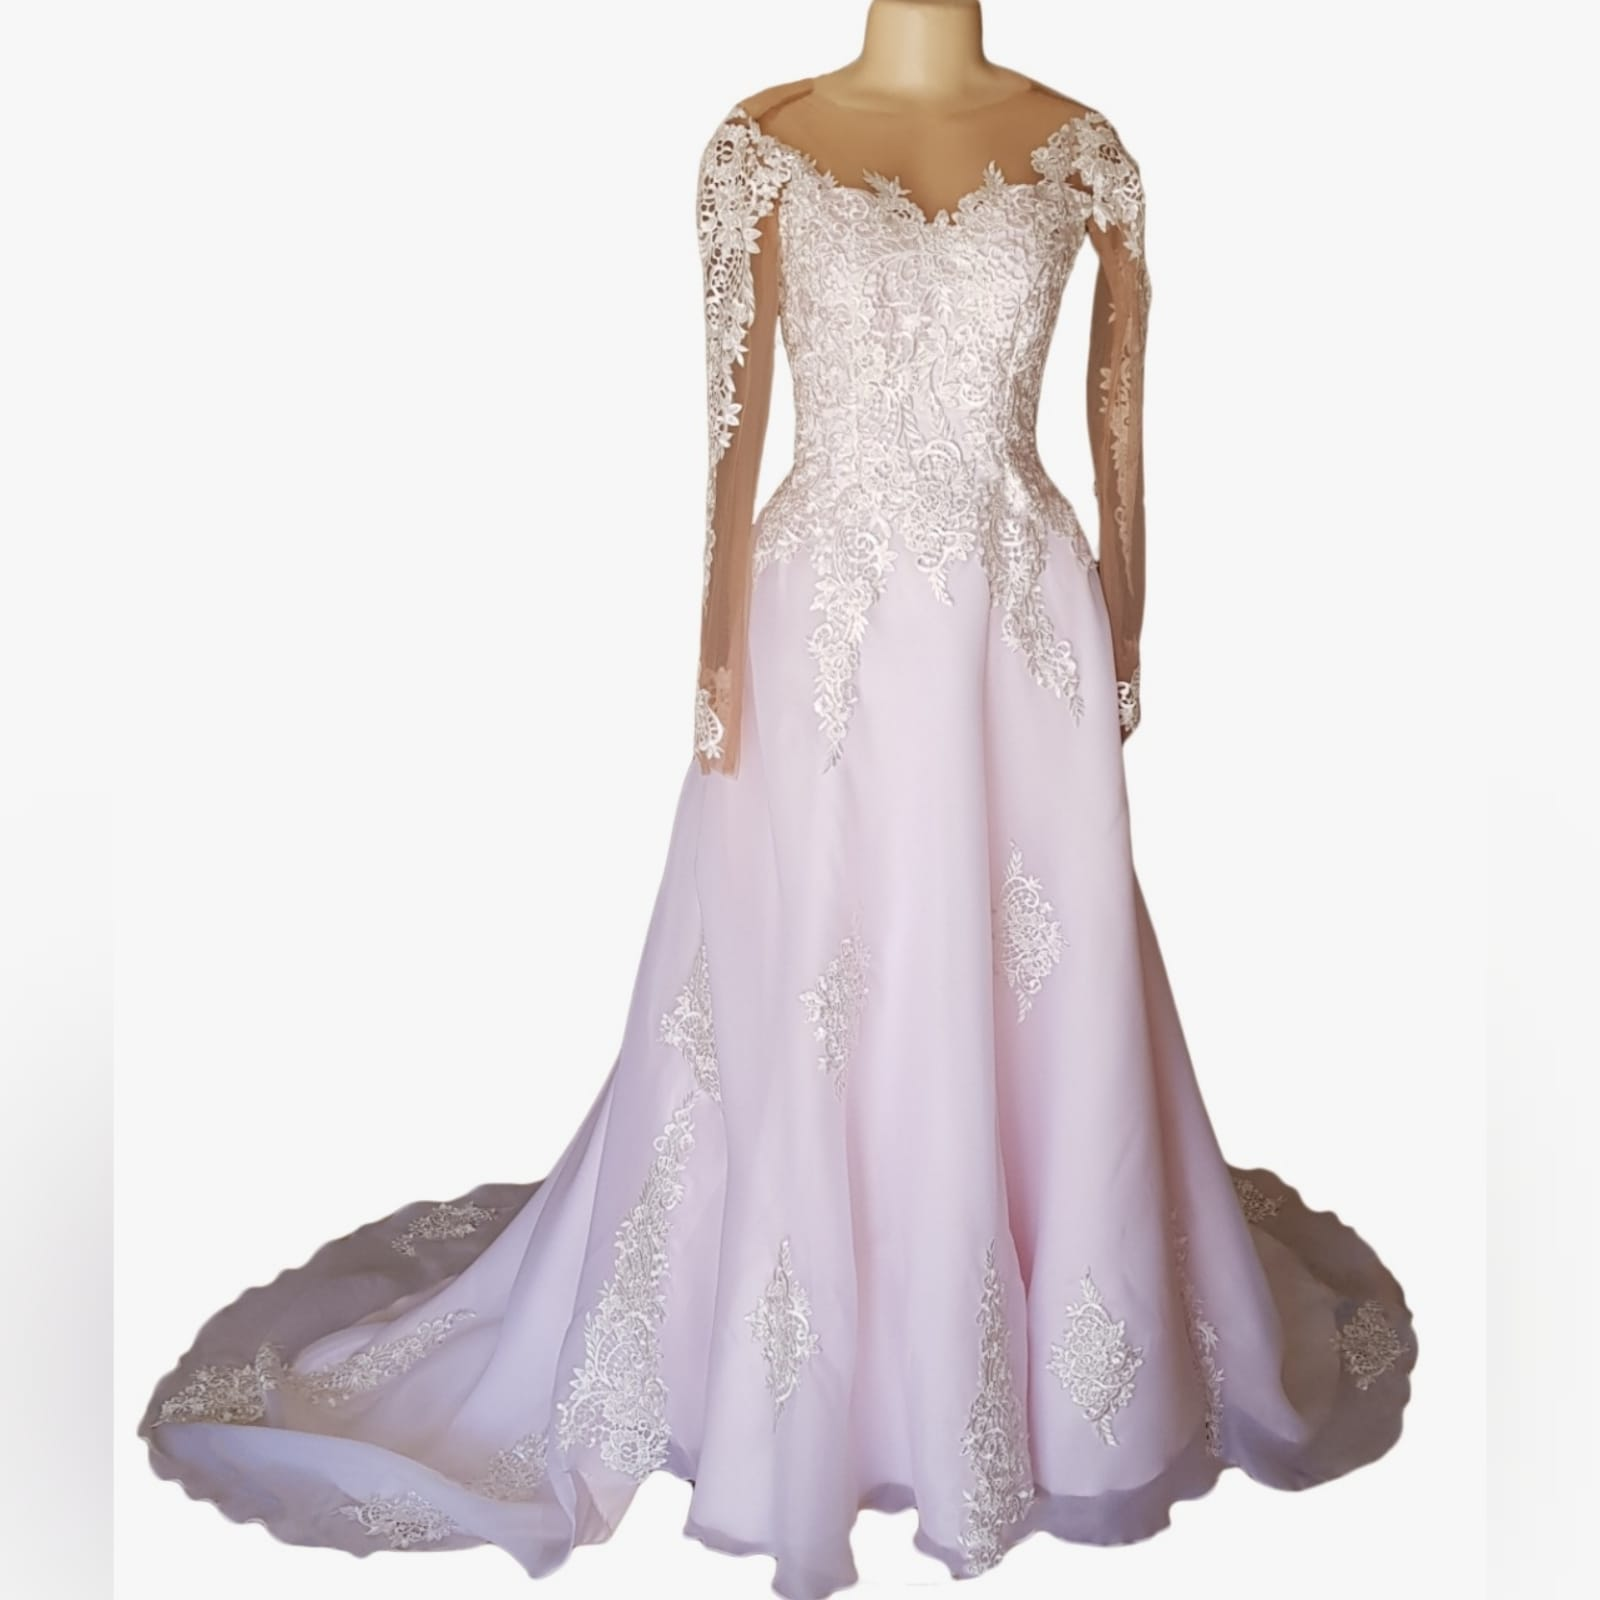 Pink and white organza lace prom dress 7 pink and white organza lace prom dress with an illusion off shoulder neckline, illusion lace long sleeves. An illusion backless design detailed with buttons. Lace on bodice and scattered throughout the dress with a train.